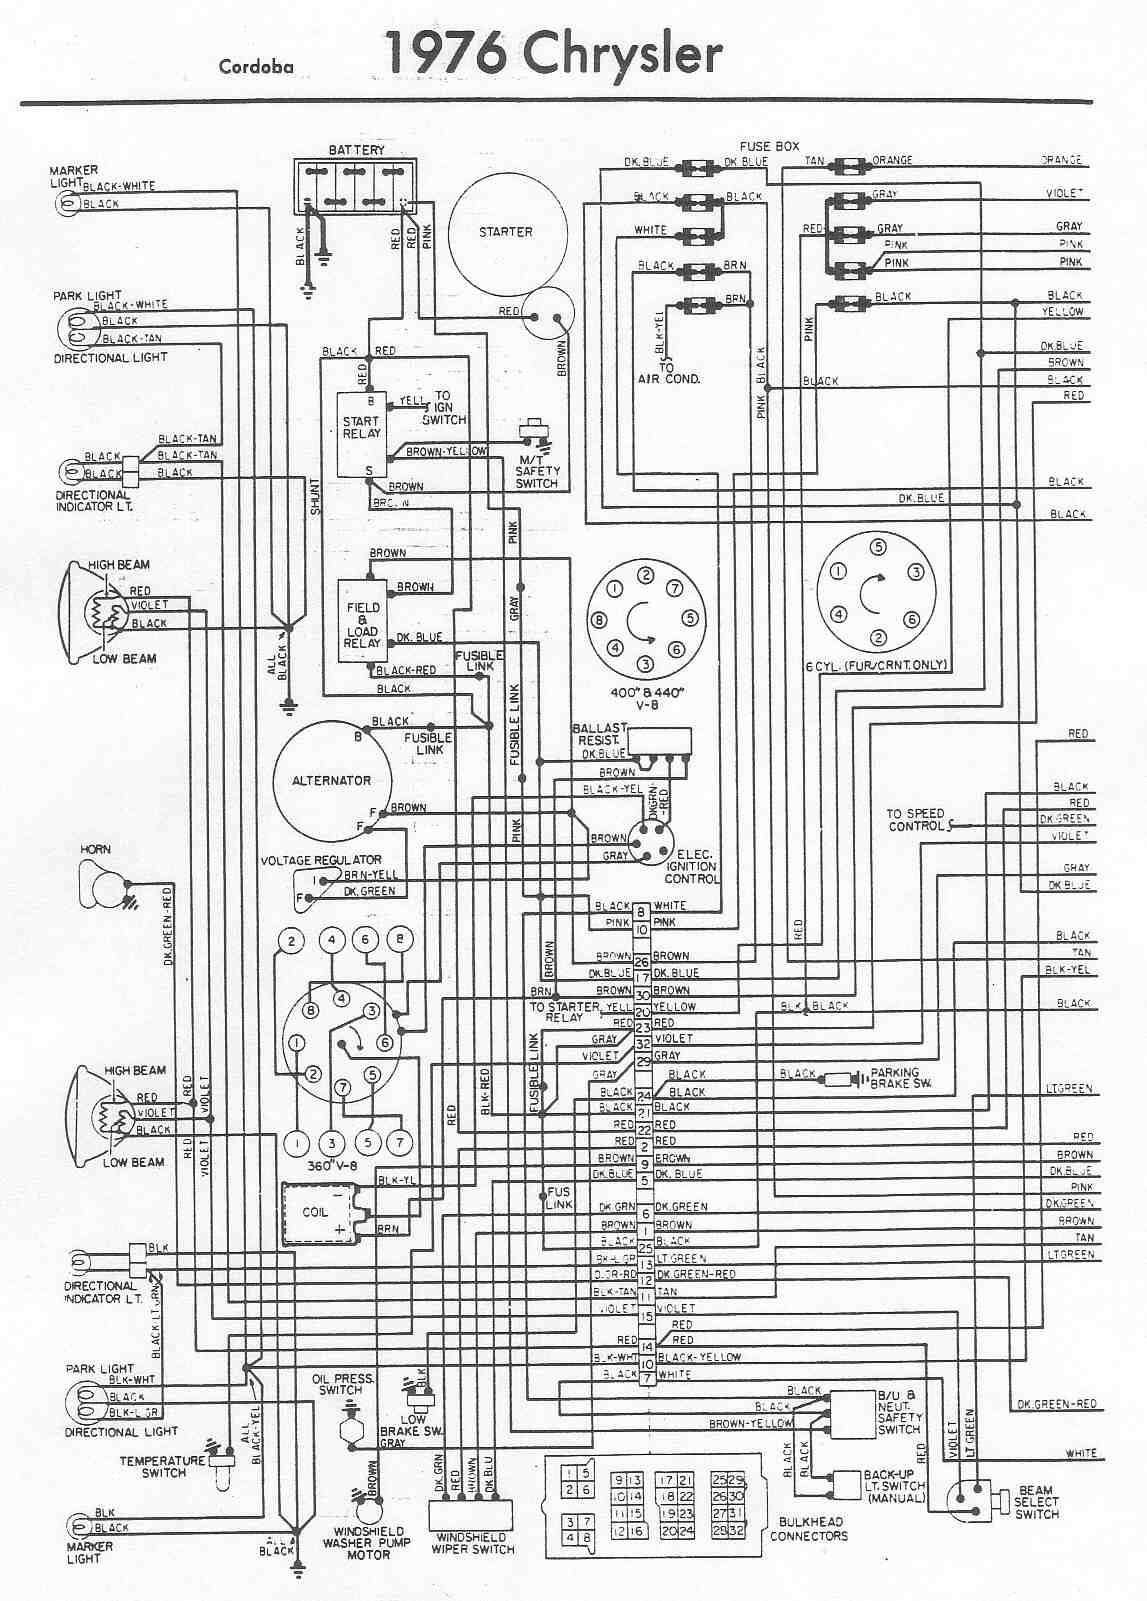 chrysler car manual pdf wiring diagram fault codes dtc Home Wiring Diagrams